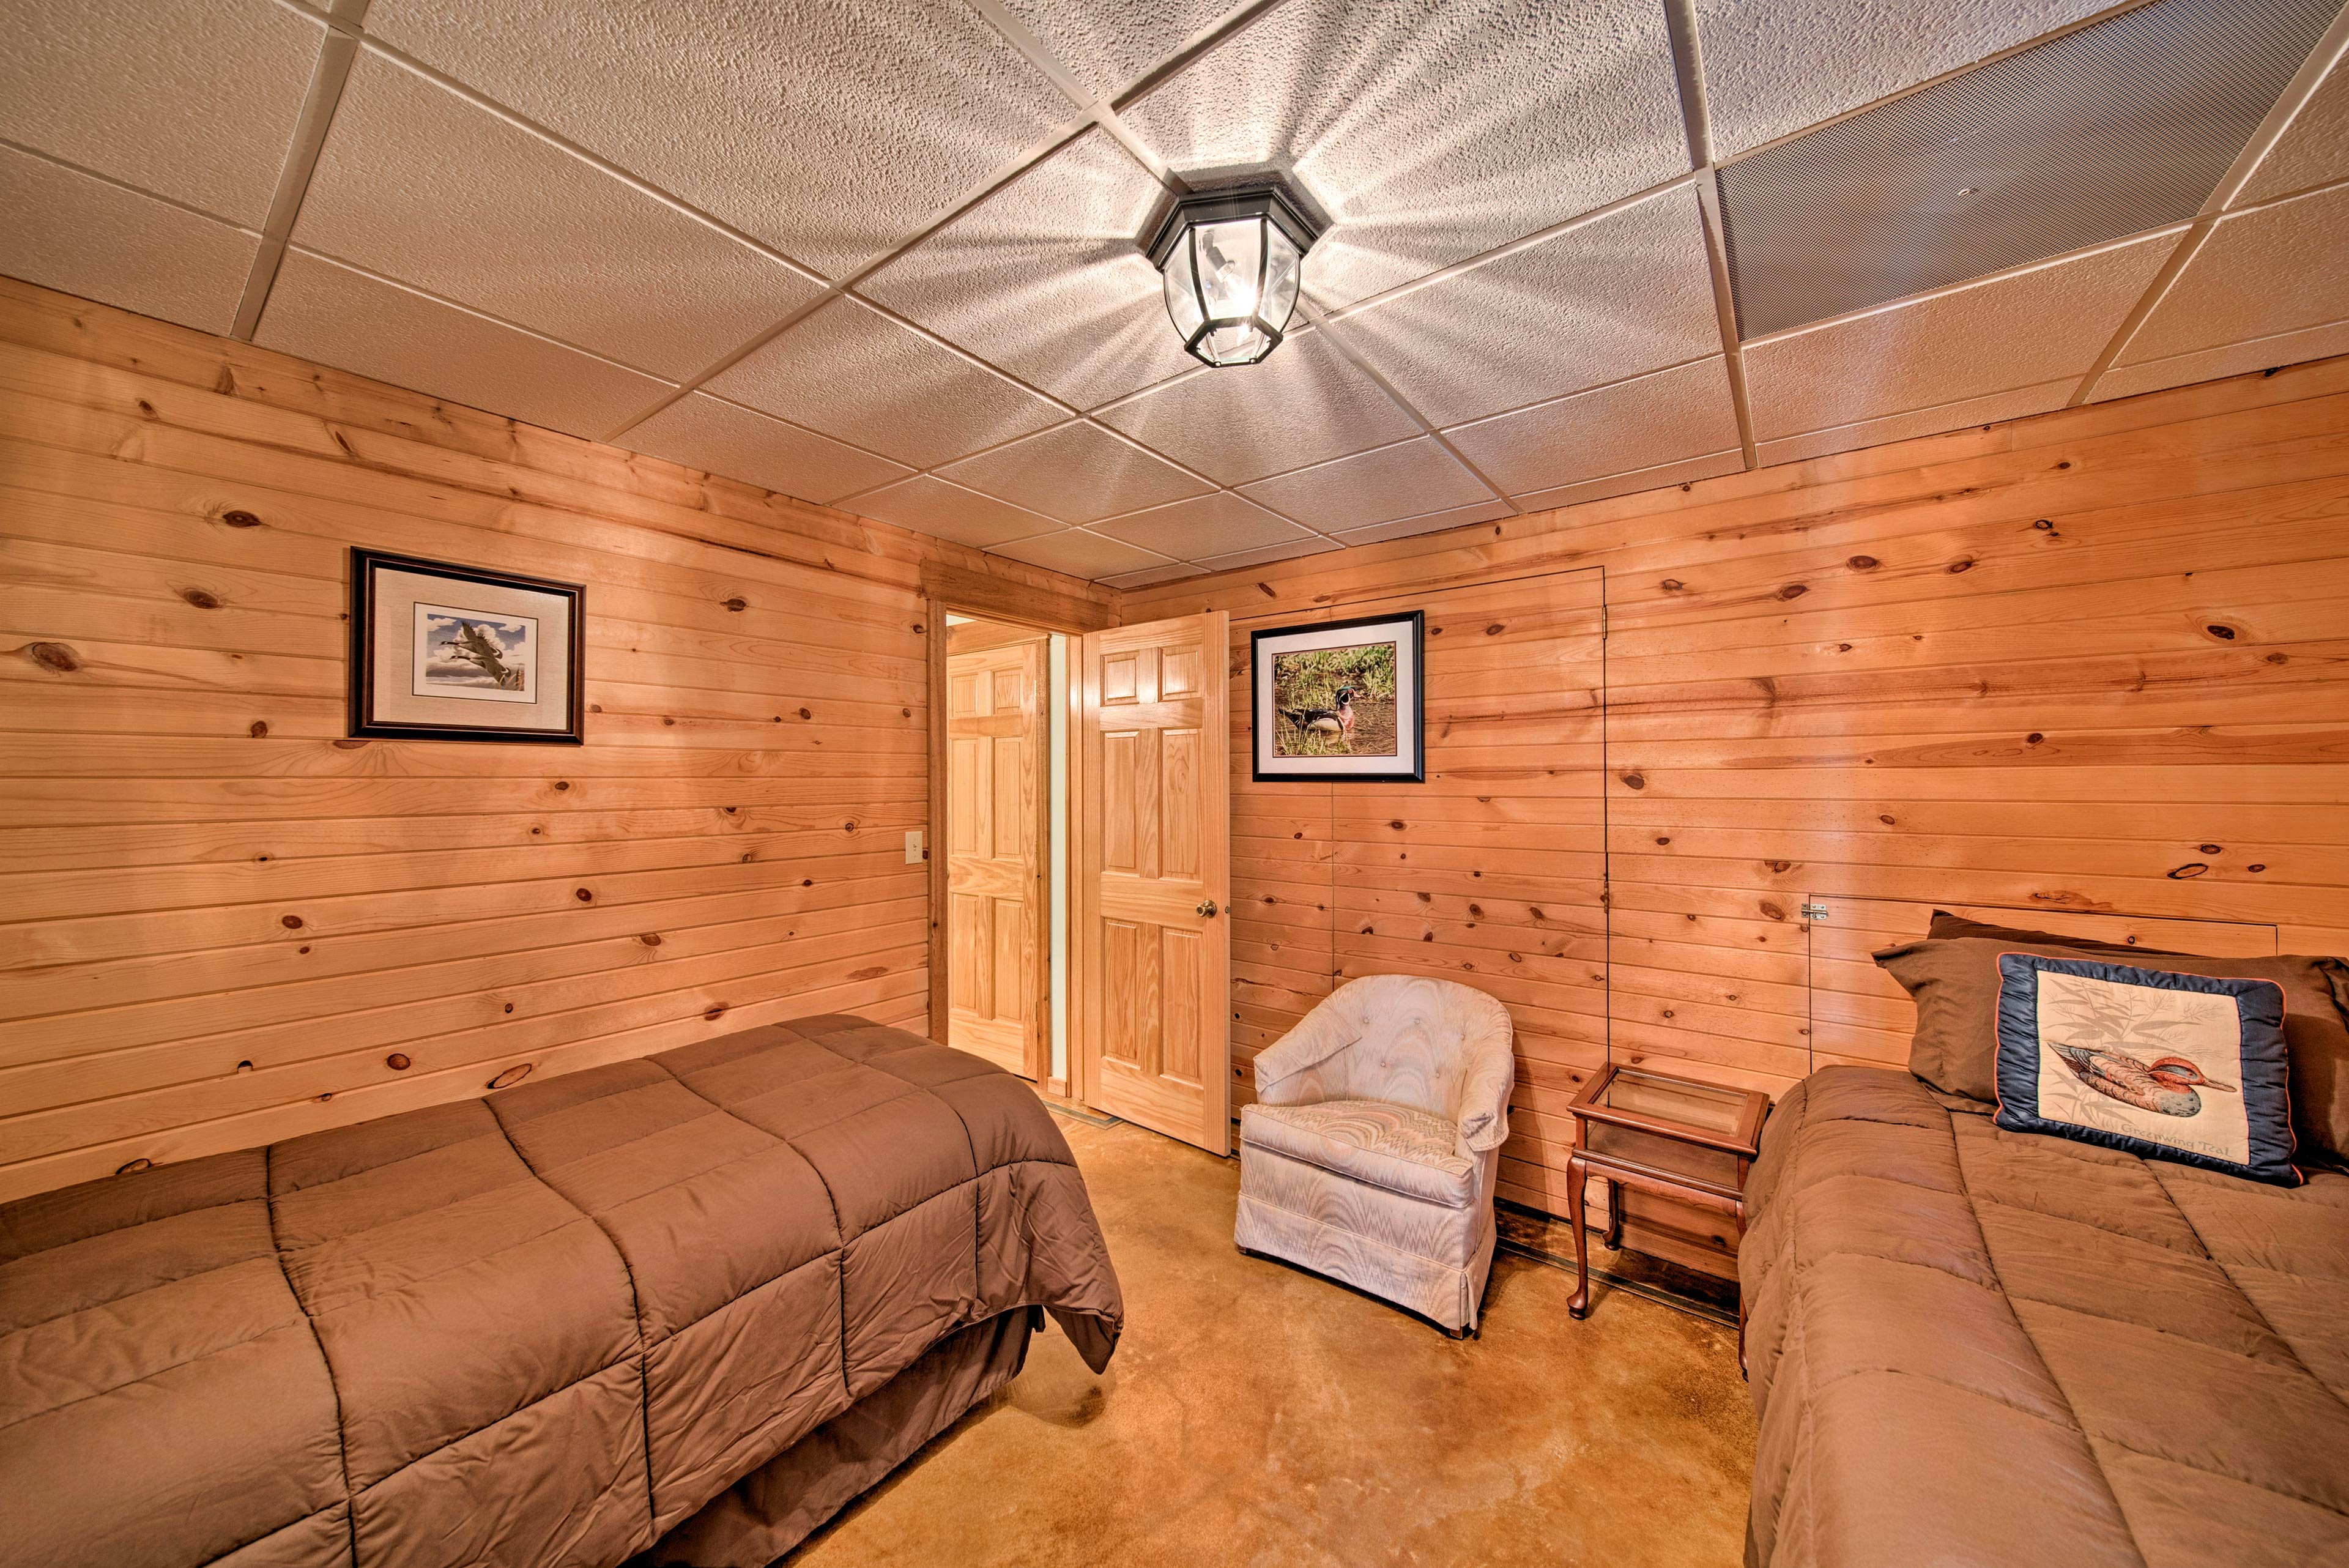 Guests can access the bathroom from both bedrooms.